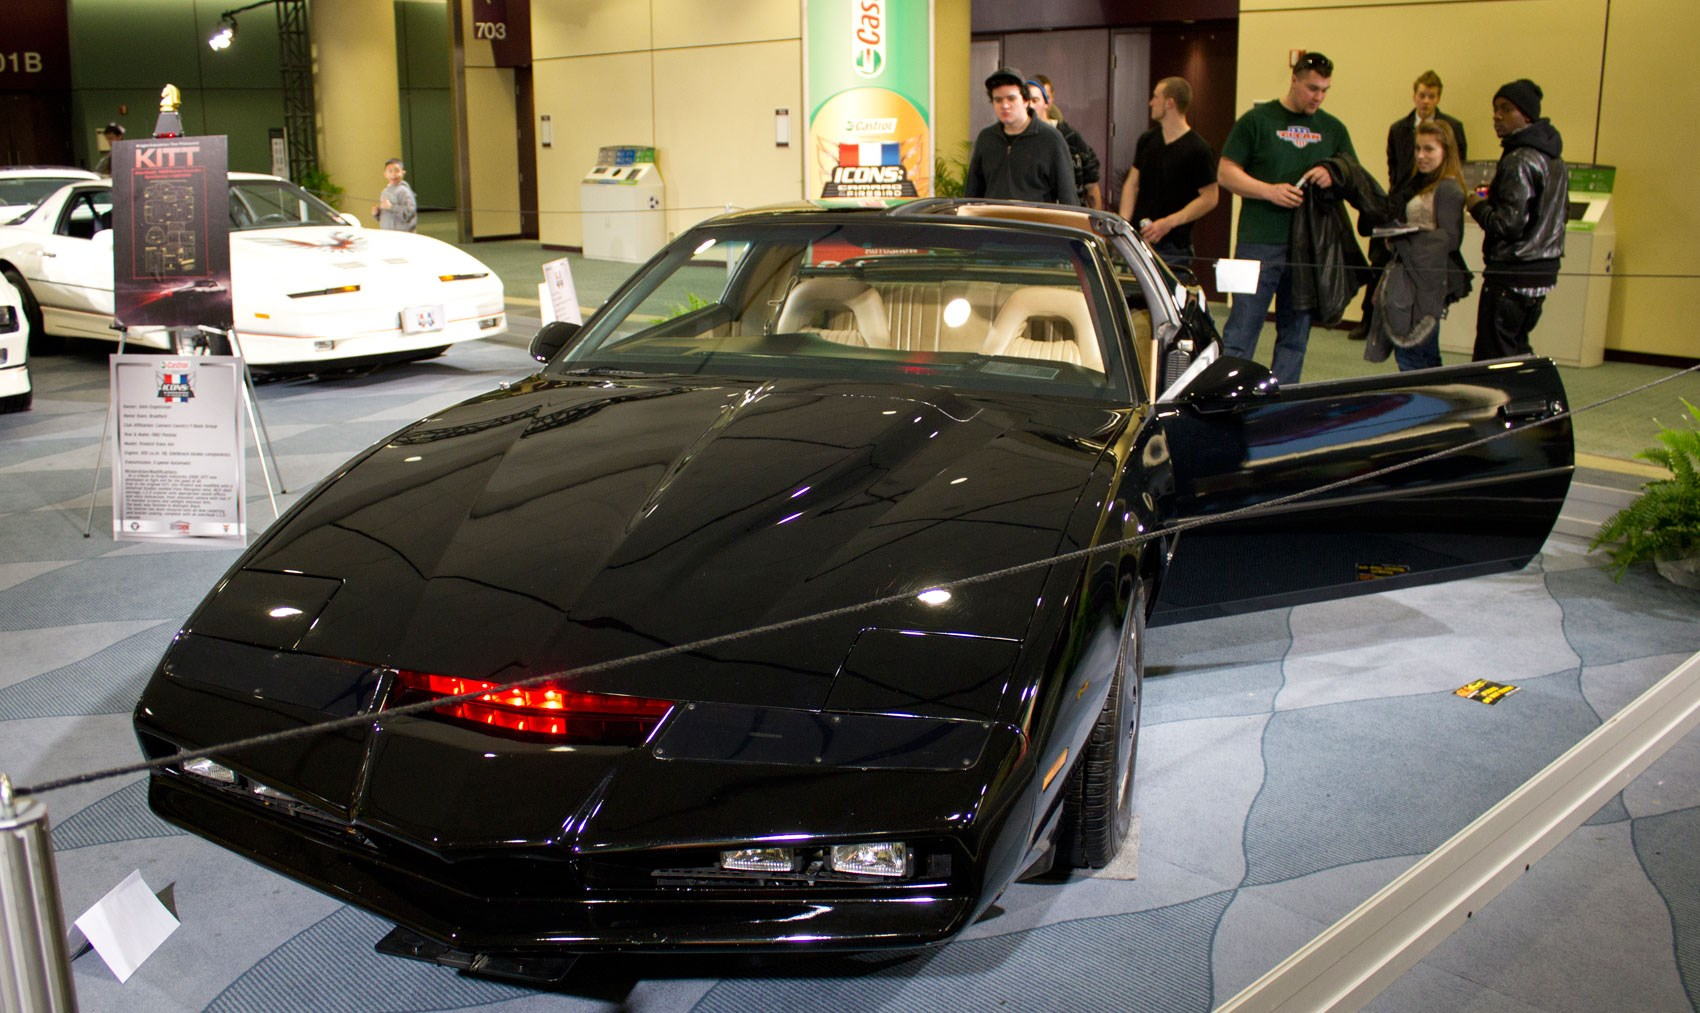 Knight Rider Car For Sale >> The Car Top 10 Krazy Kustom Cars By George Barris Car